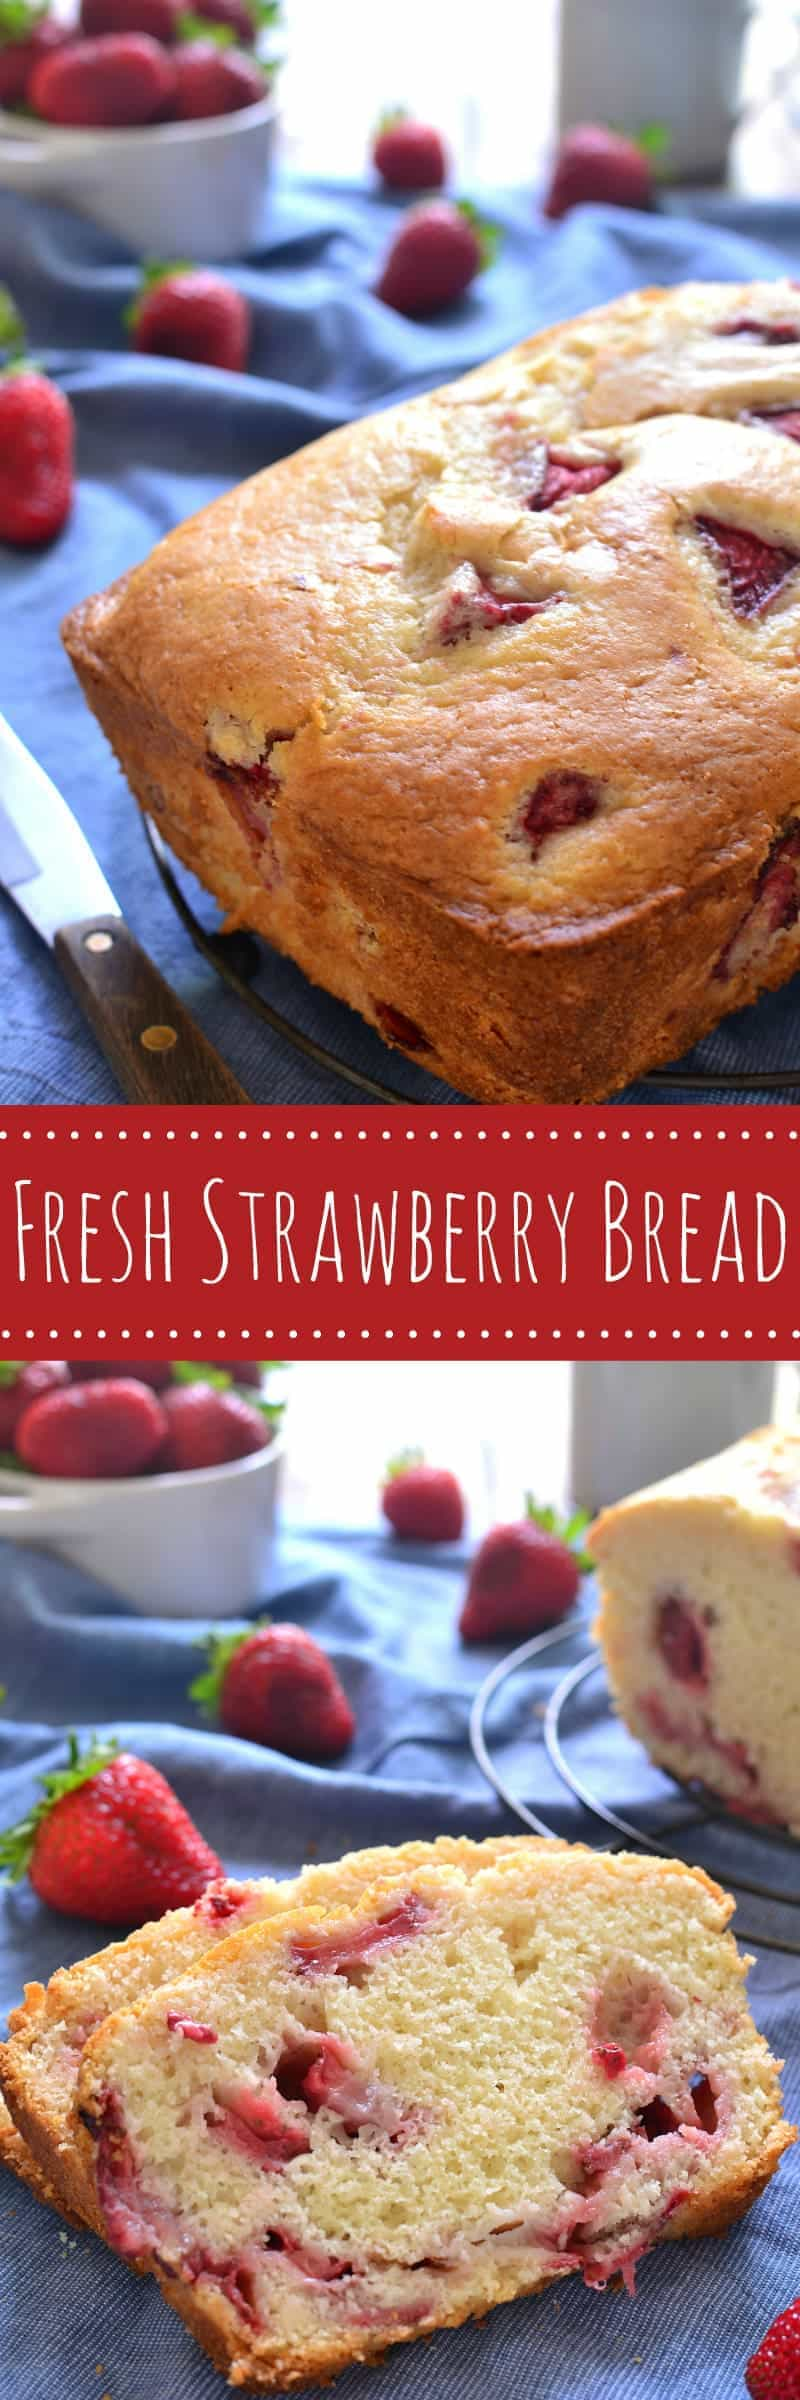 Collage image of Fresh Strawberry Bread